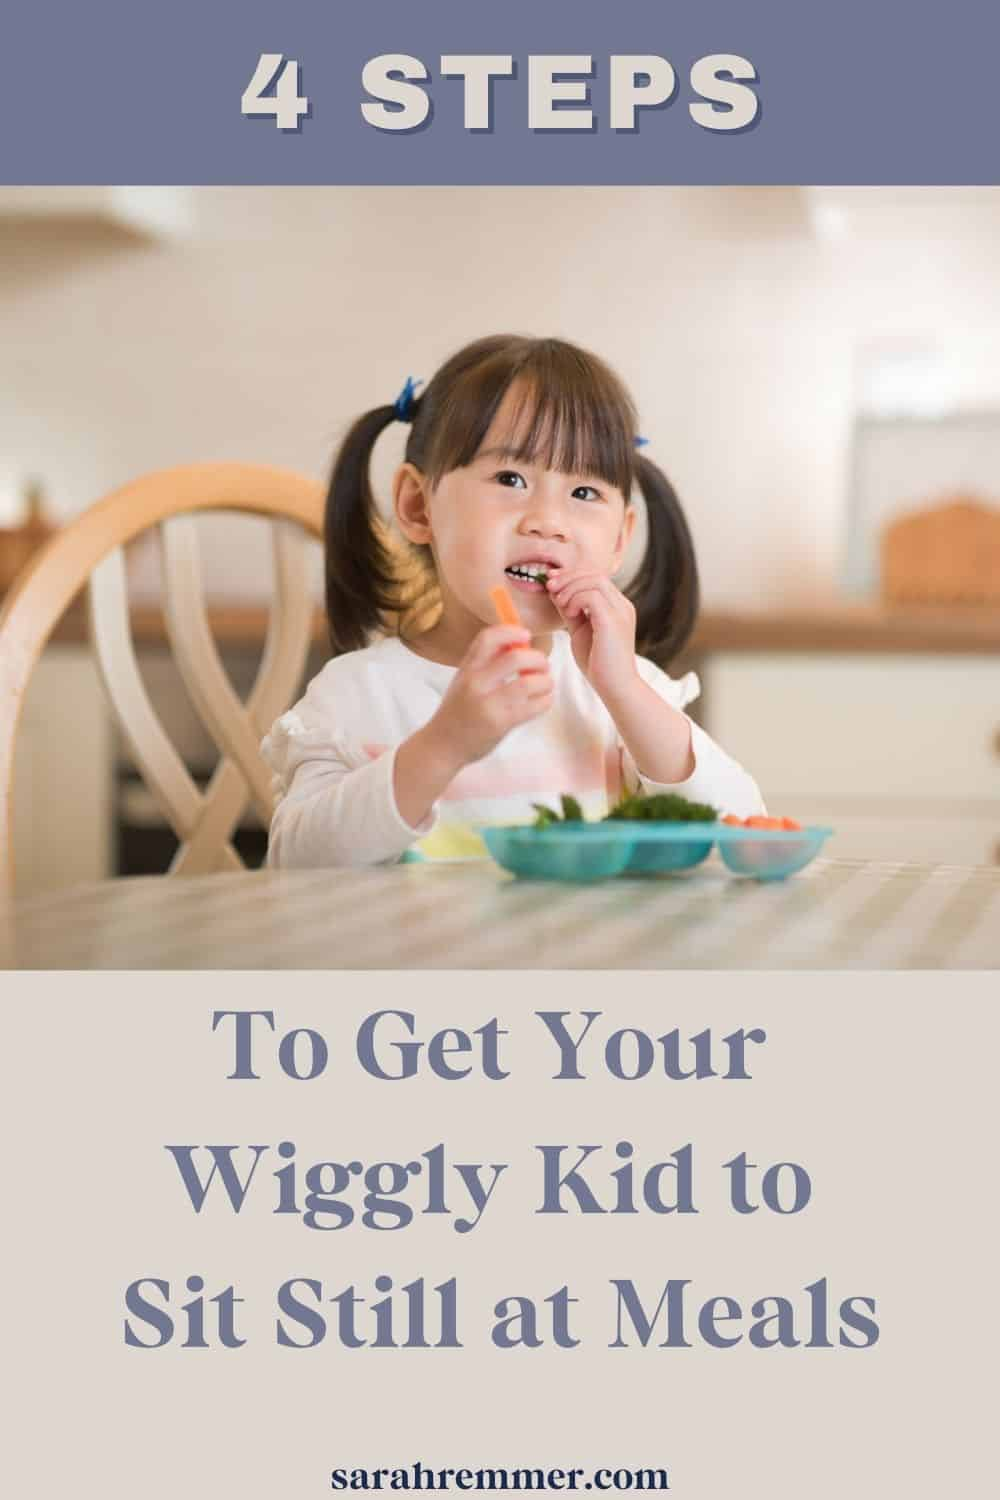 4 Steps to Get your Wiggly Kid to Sit Still at Meals